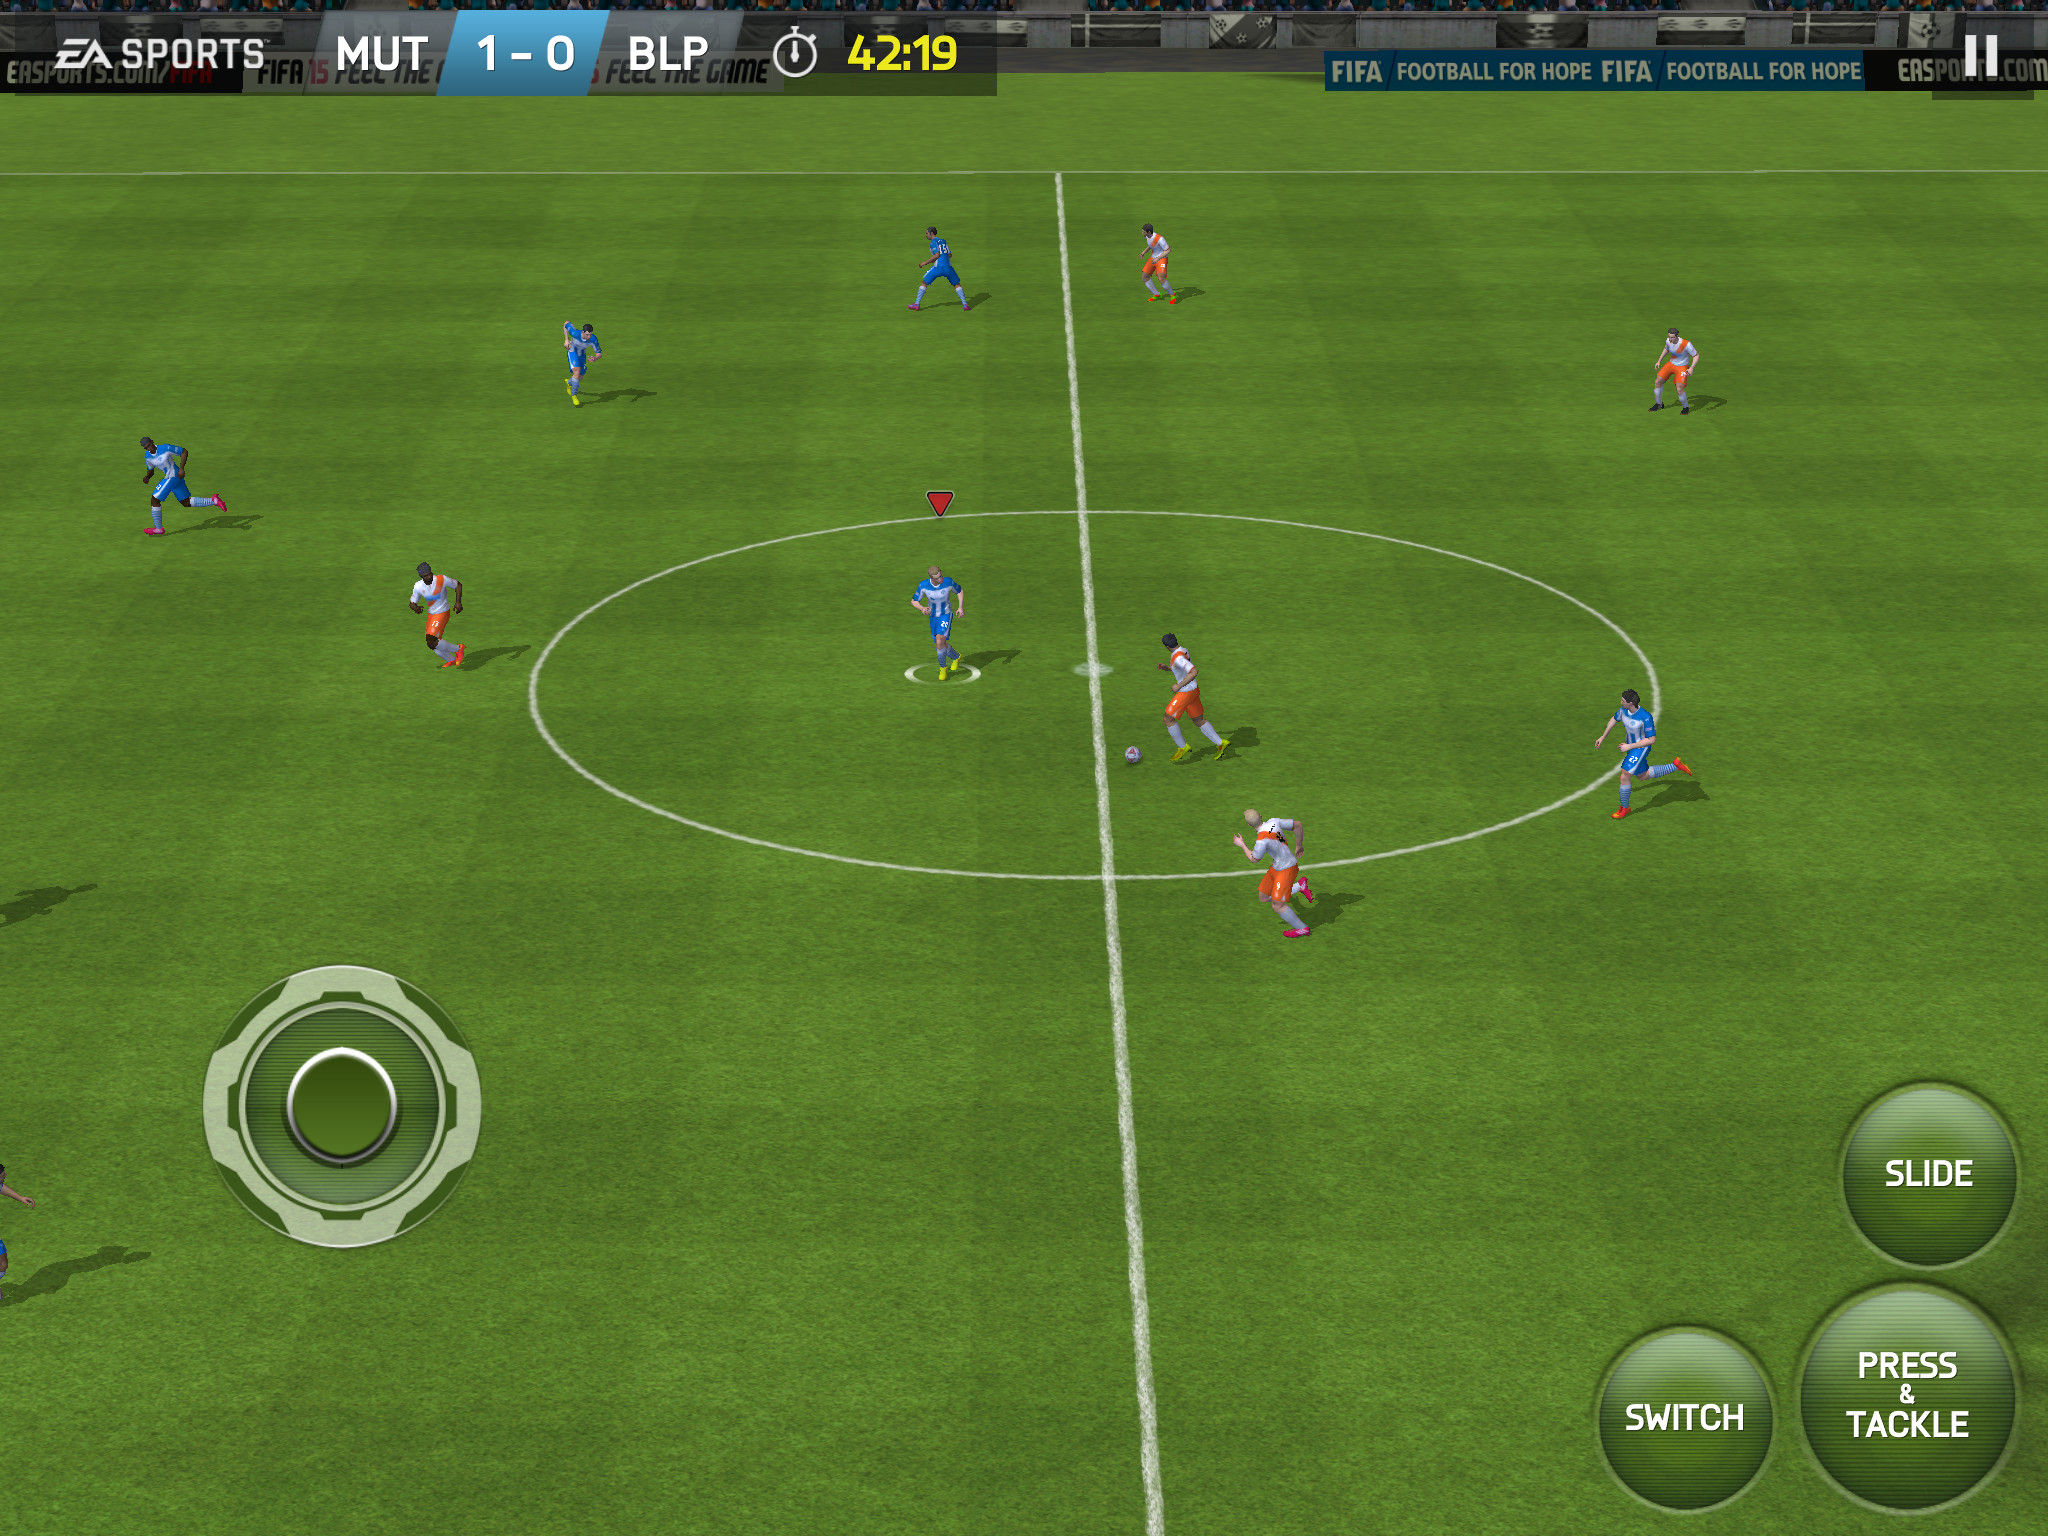 Football is kicking off a little early on iOS thanks to this big football game sale